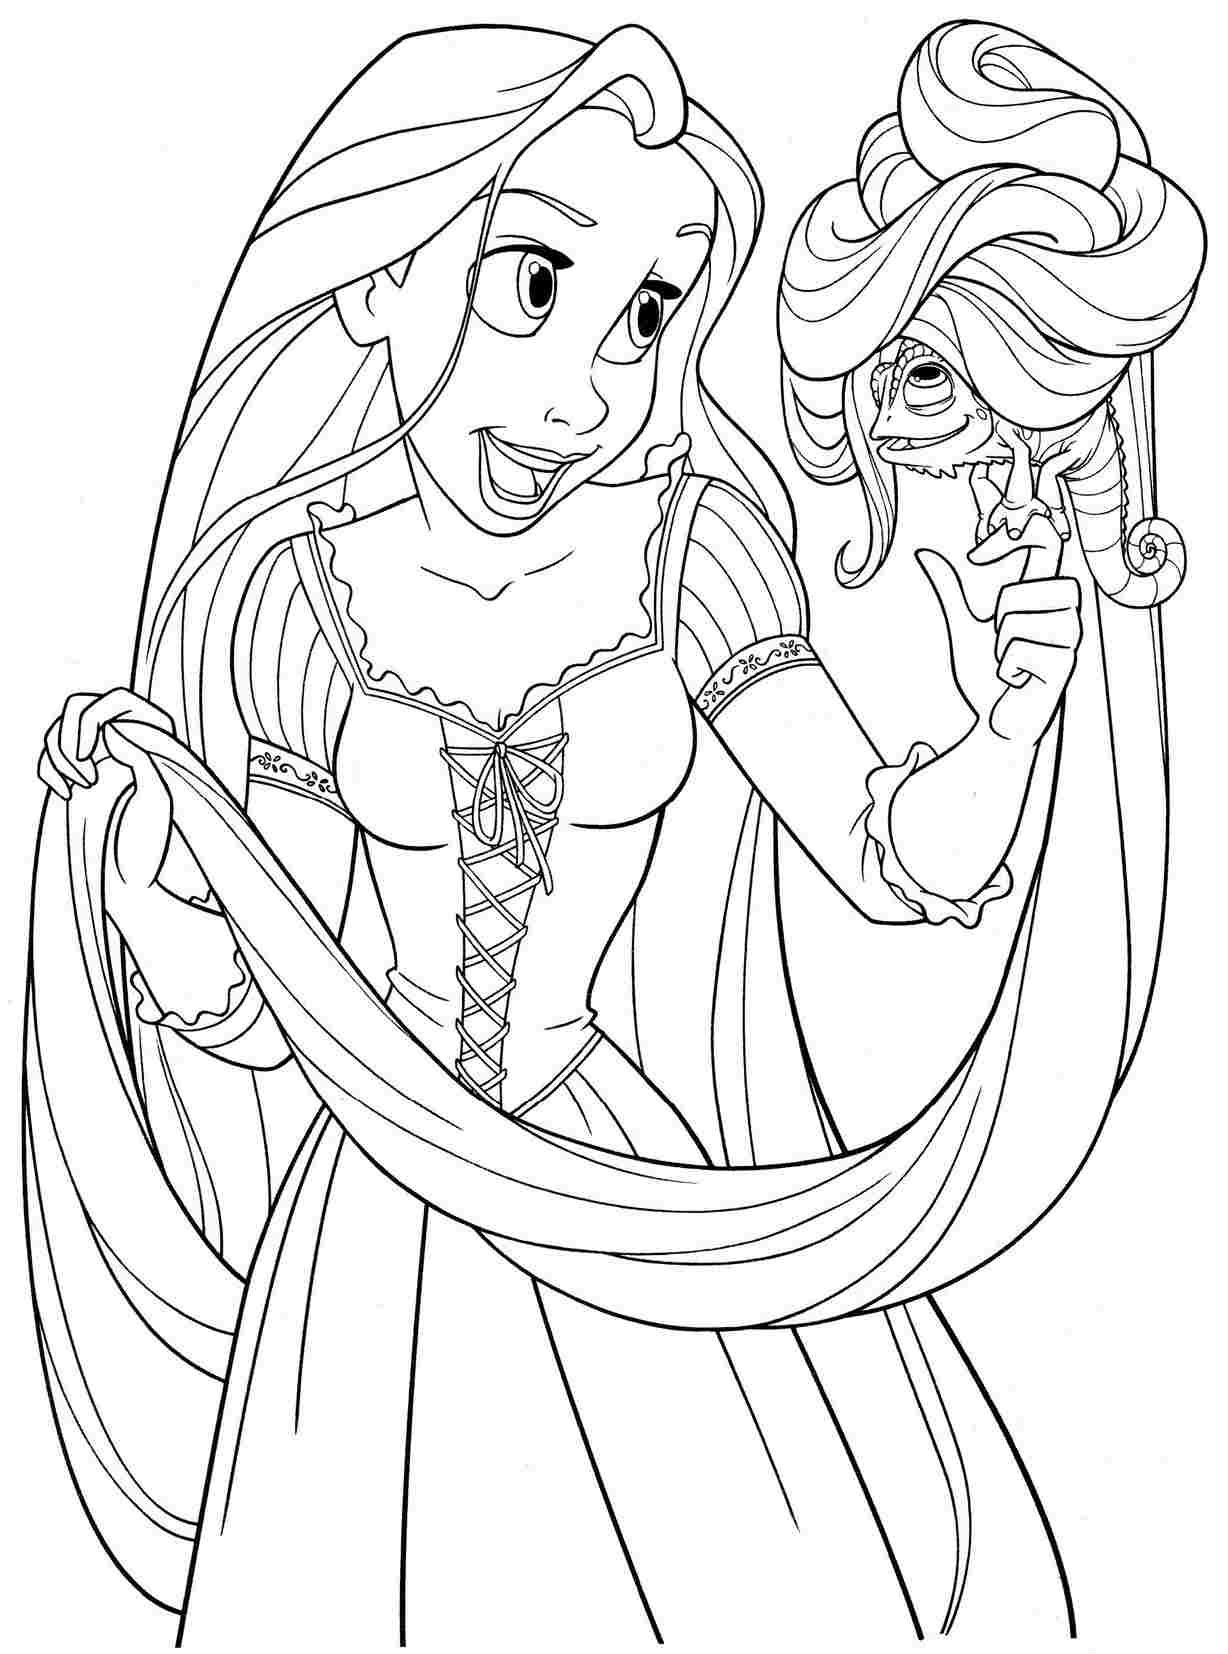 kids disney princess coloring pages - photo#26